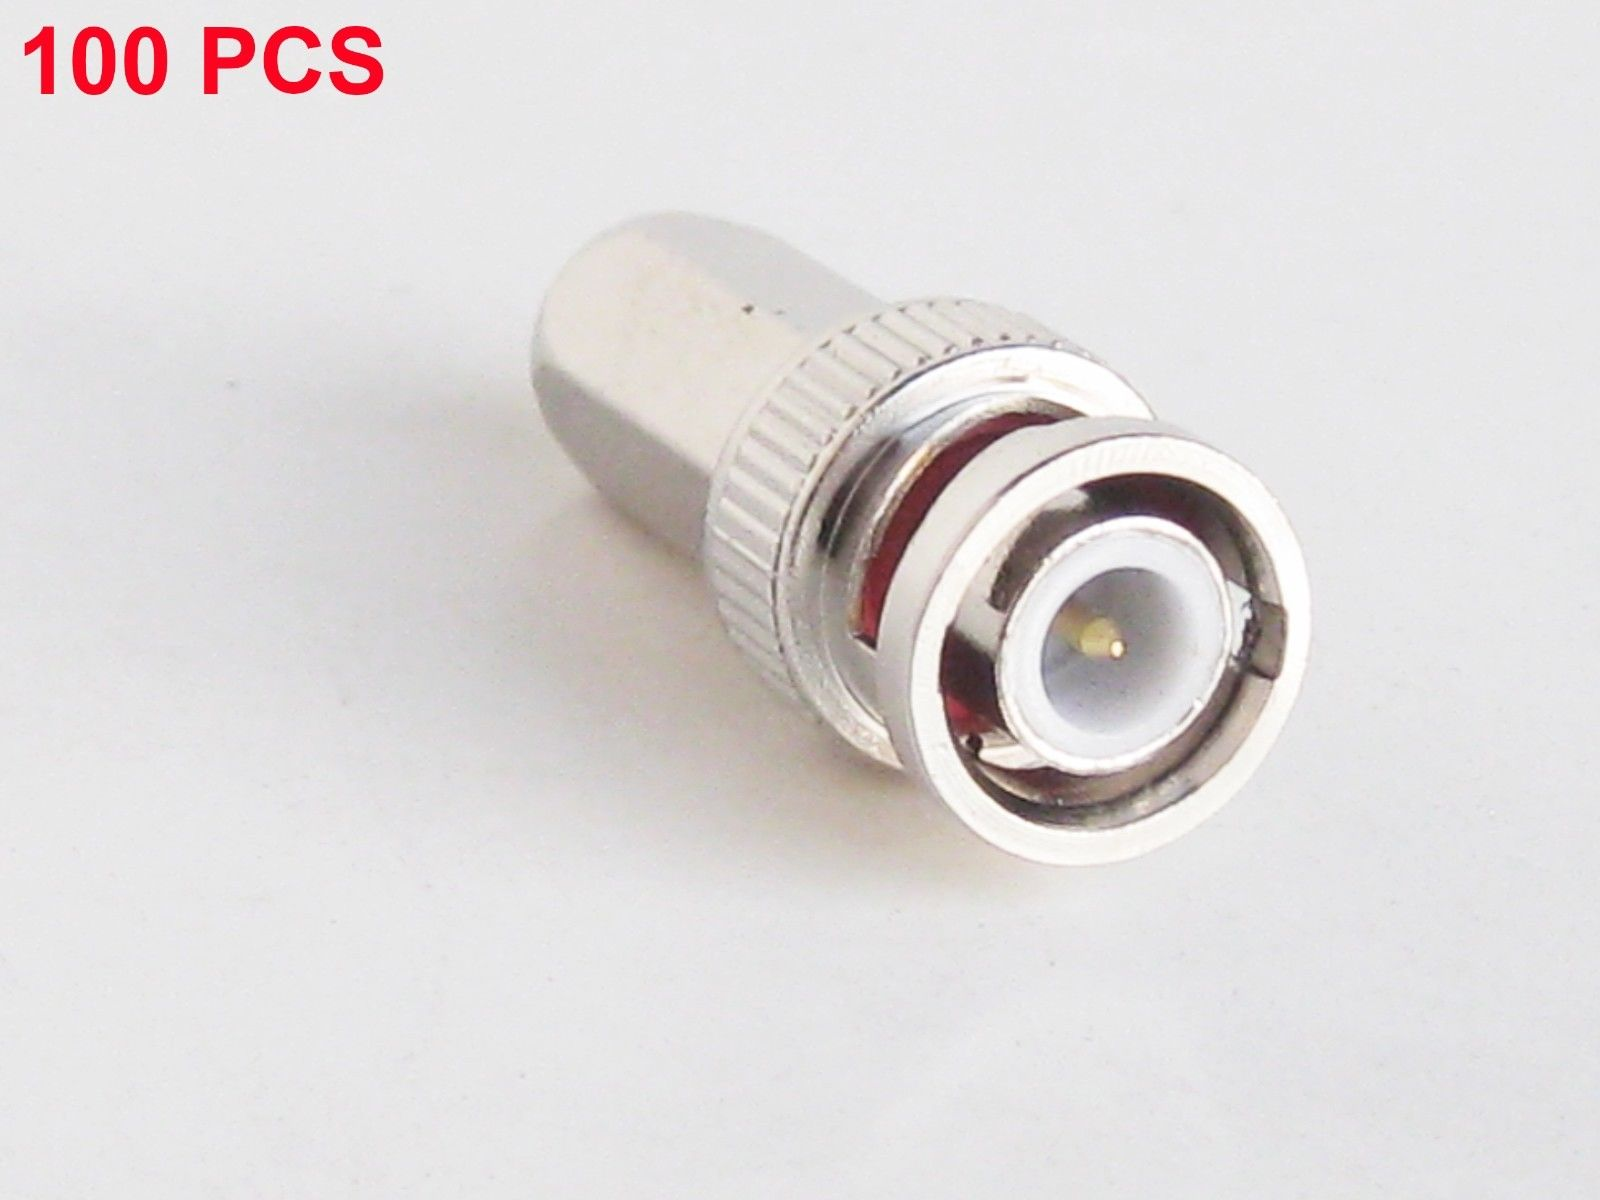 100Pcs Twist-on BNC Male RG59 Coaxial Connector Adapter For CCTV Security Camera